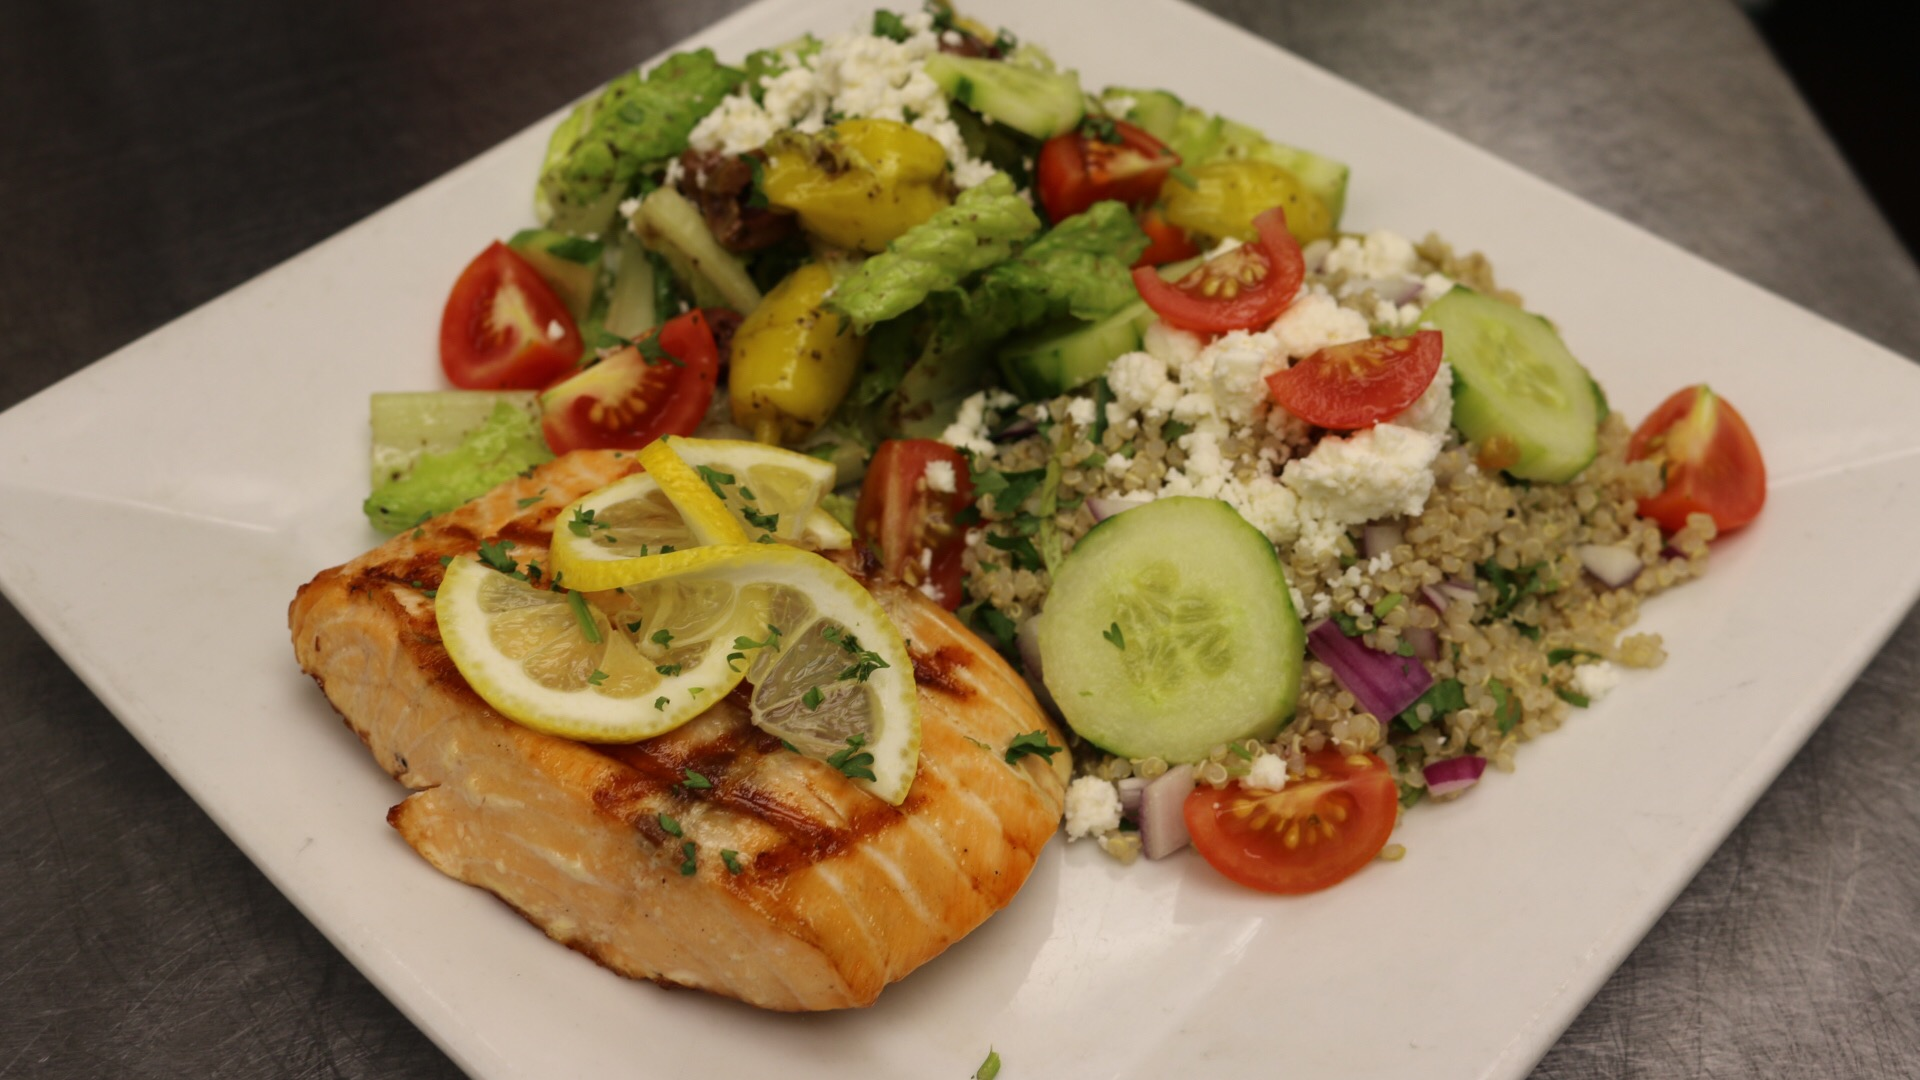 Fresh grilled salmon with a side of lemon basil rice and a small greek salad